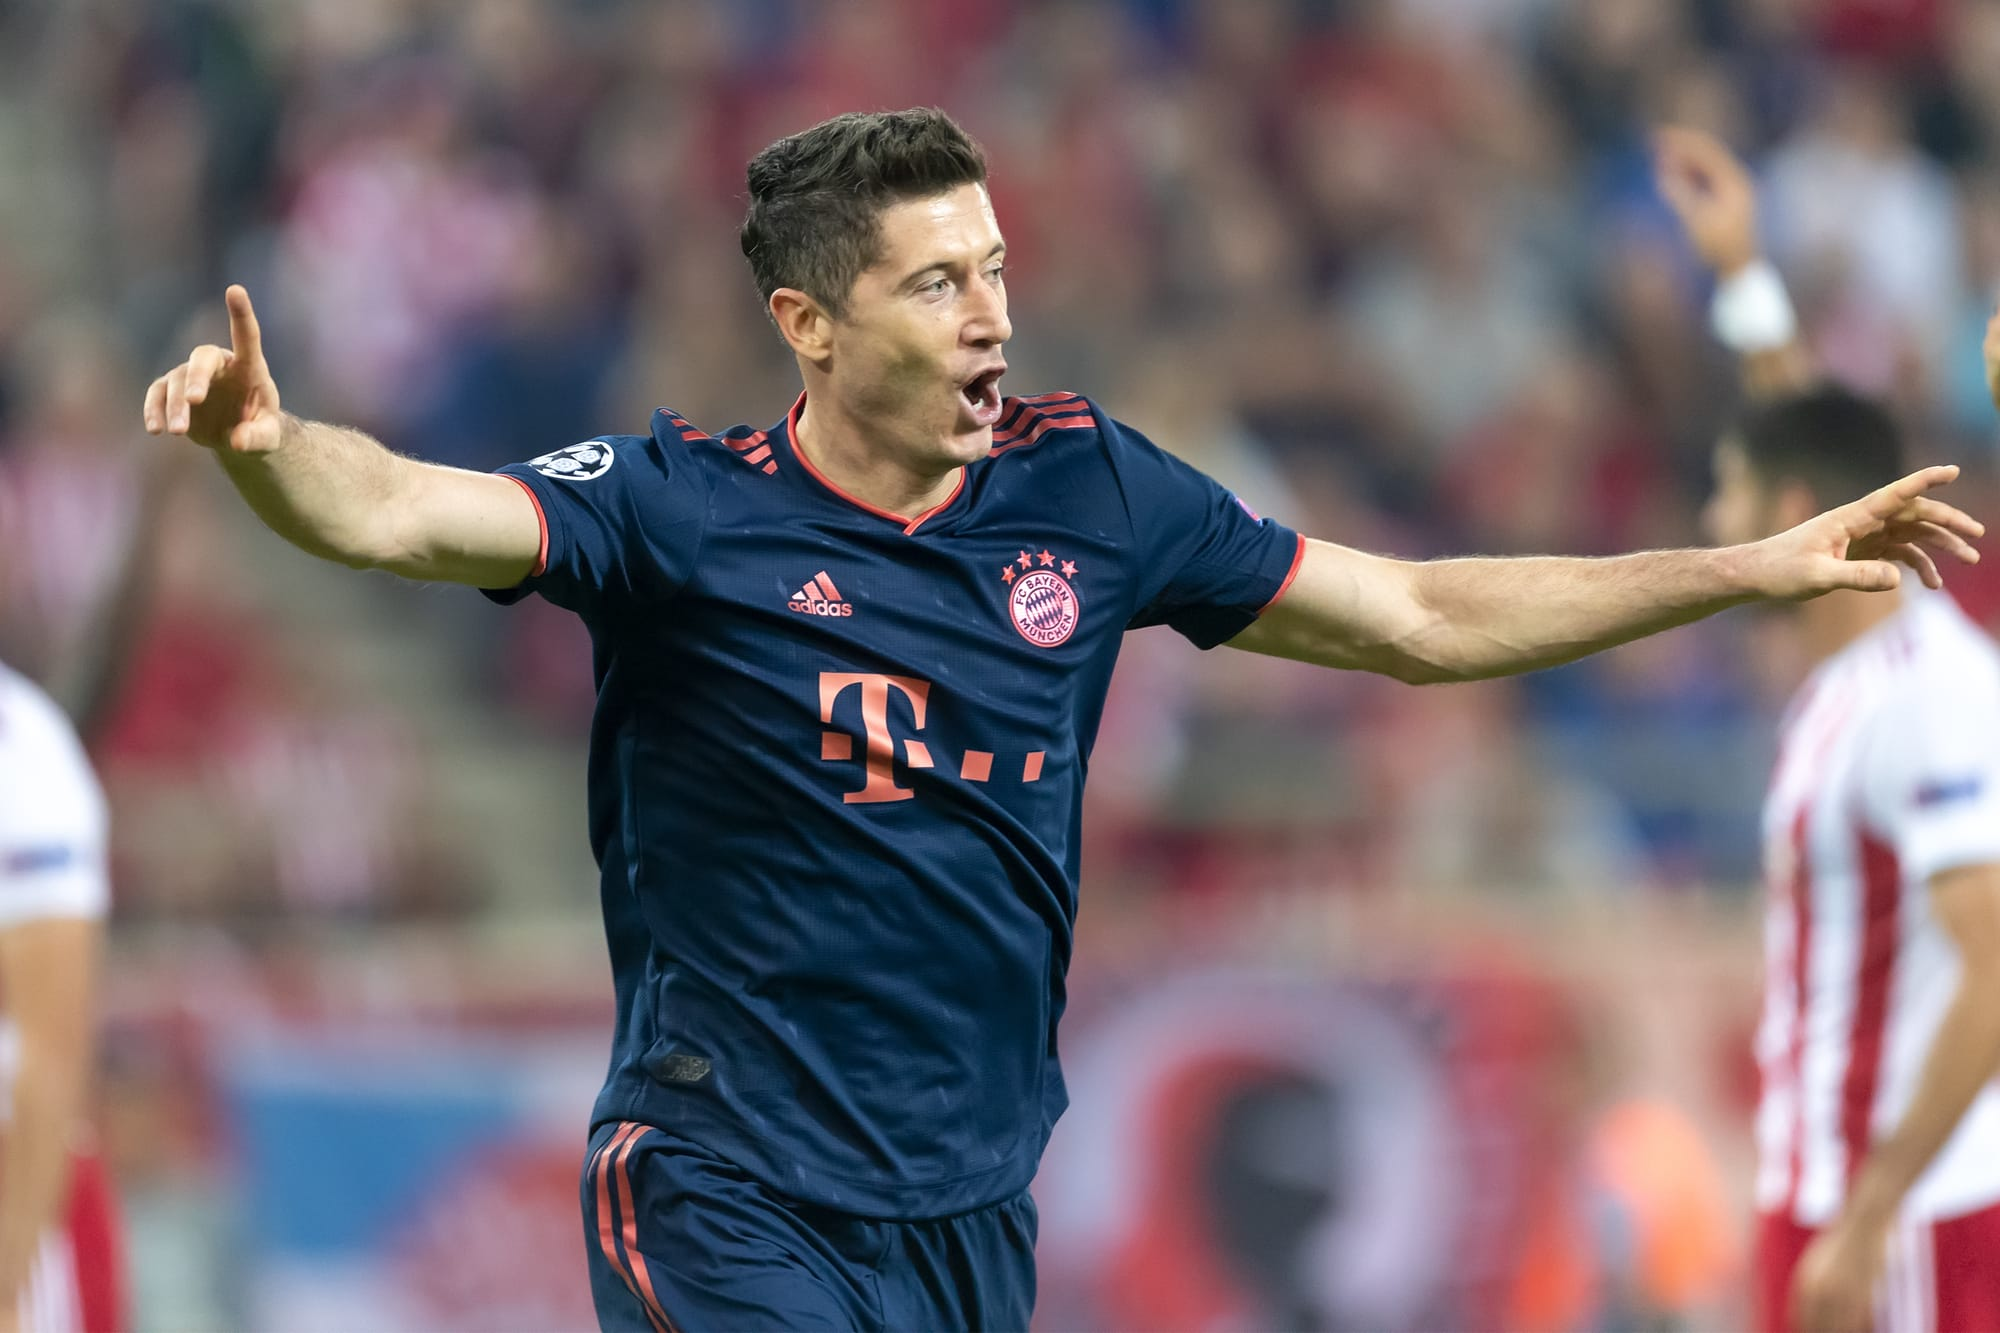 Lewandowski scores in the Olympique Lyonnaise 0 Bayern Munich 3 match